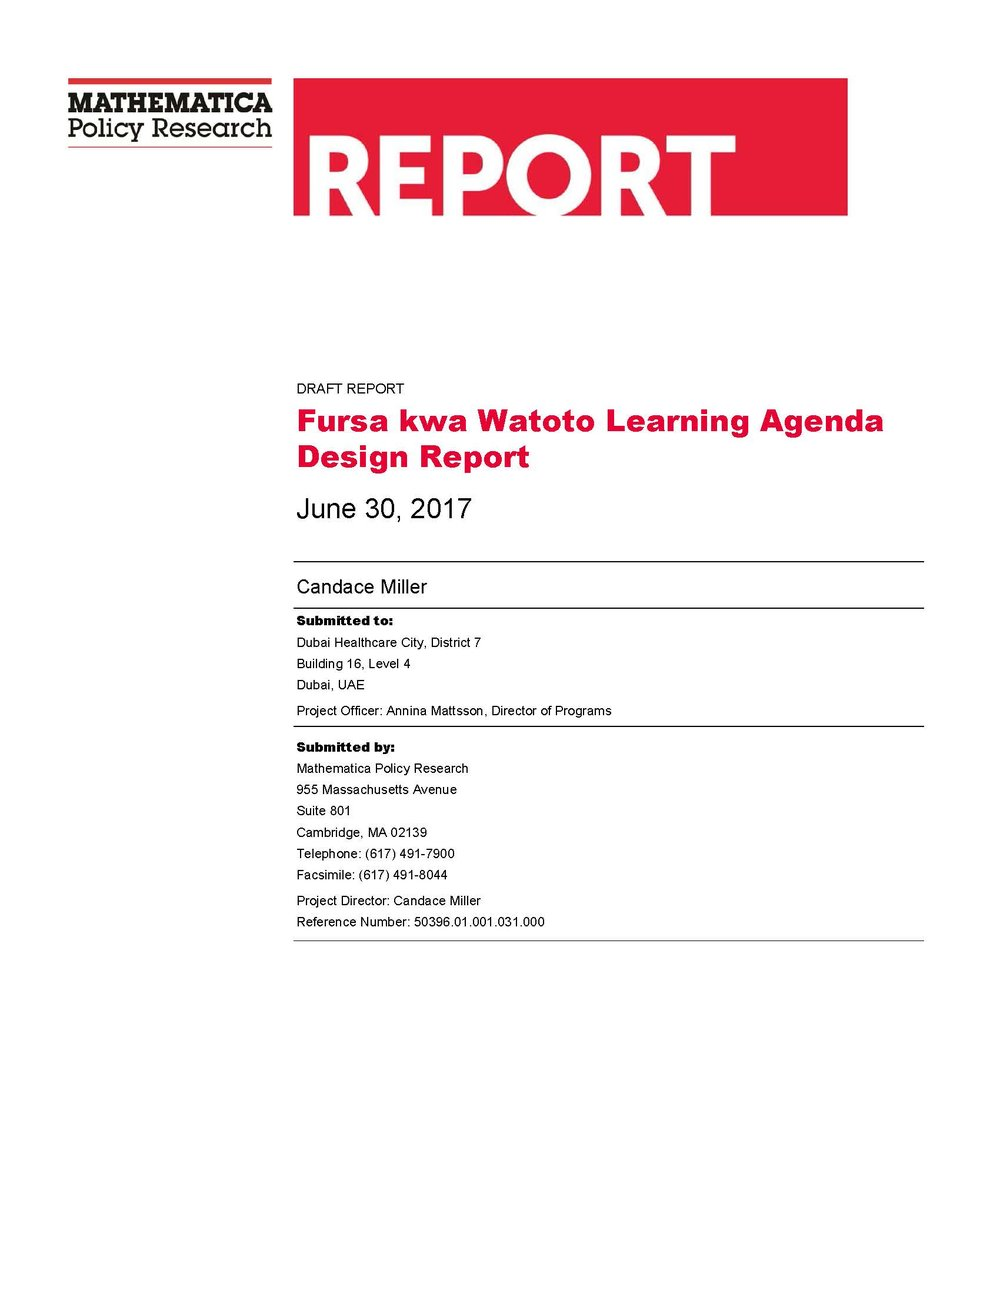 Learning Agenda Design Report